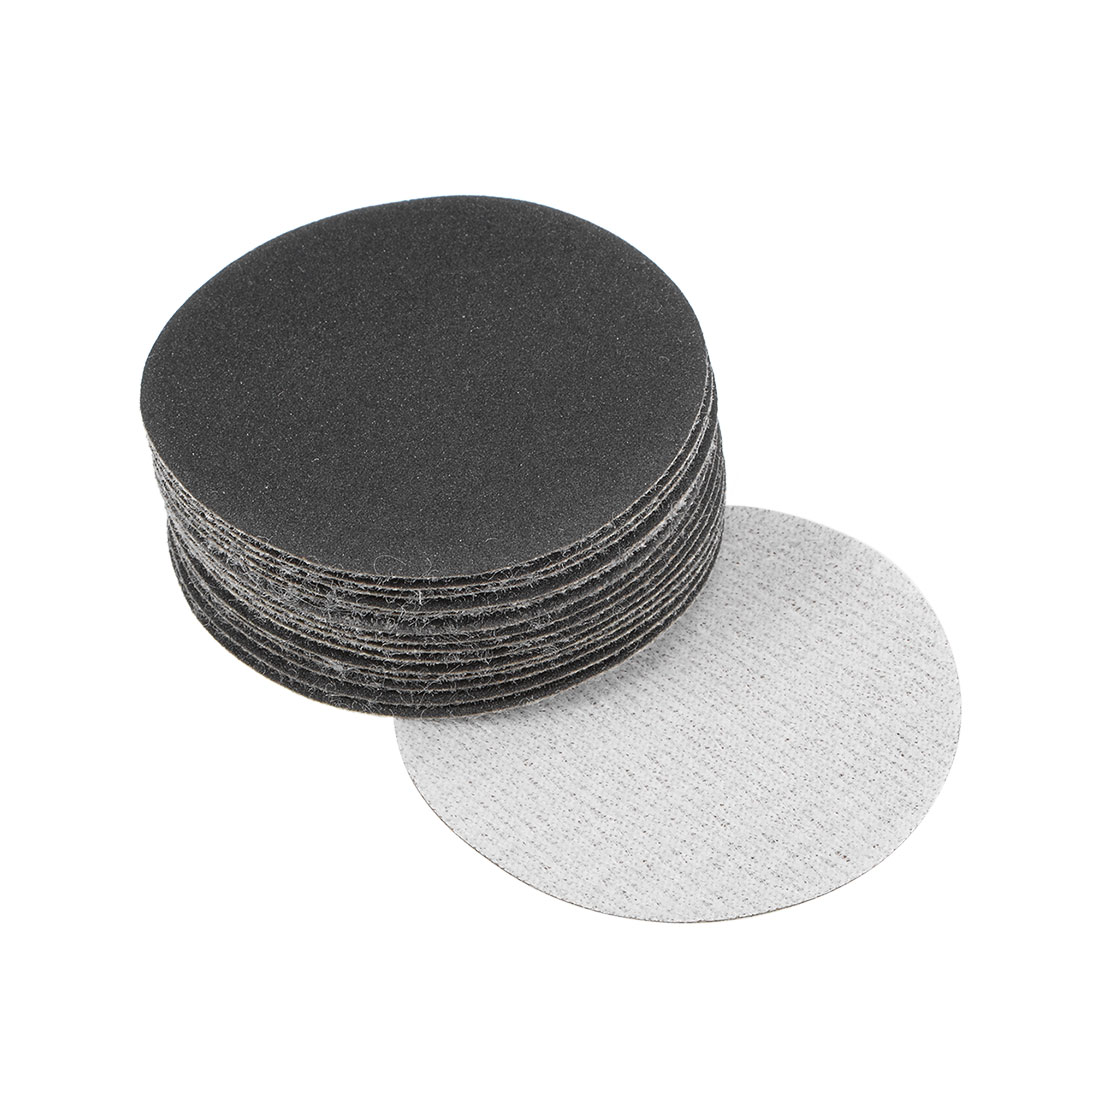 2 inch Wet Dry Discs 320 Grit Hook and Loop Sanding Disc Silicon Carbide 15pcs